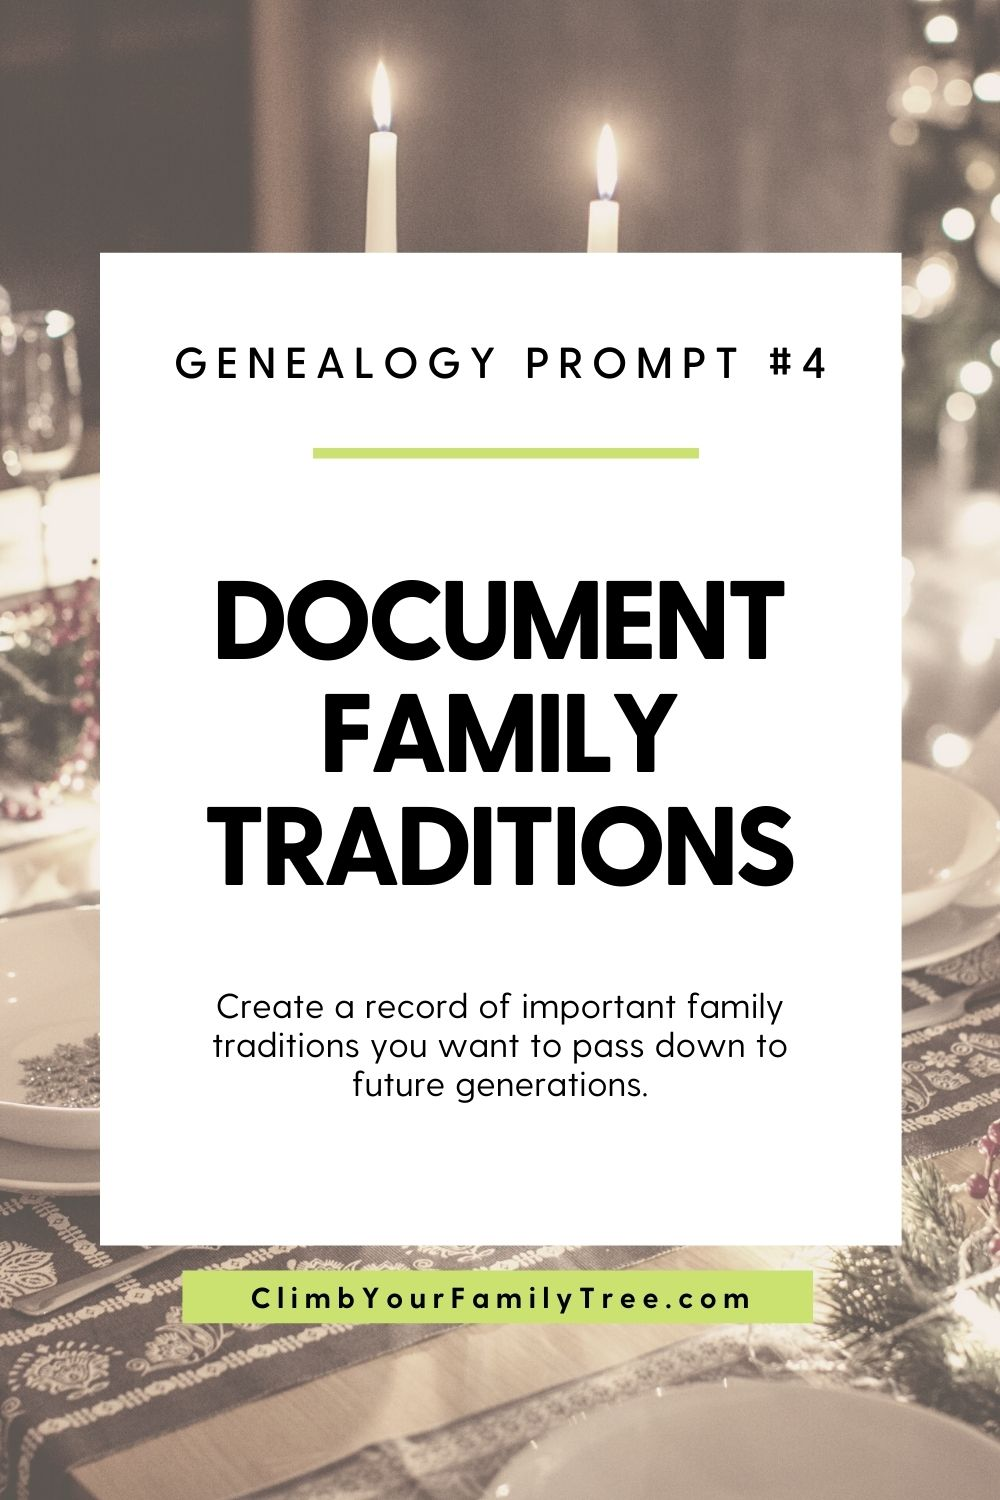 Genealogy prompt 4 - Document family Traditions - Create a record of important family traditions you want to pass down to future generations - ClimbYourFamilyTree.com